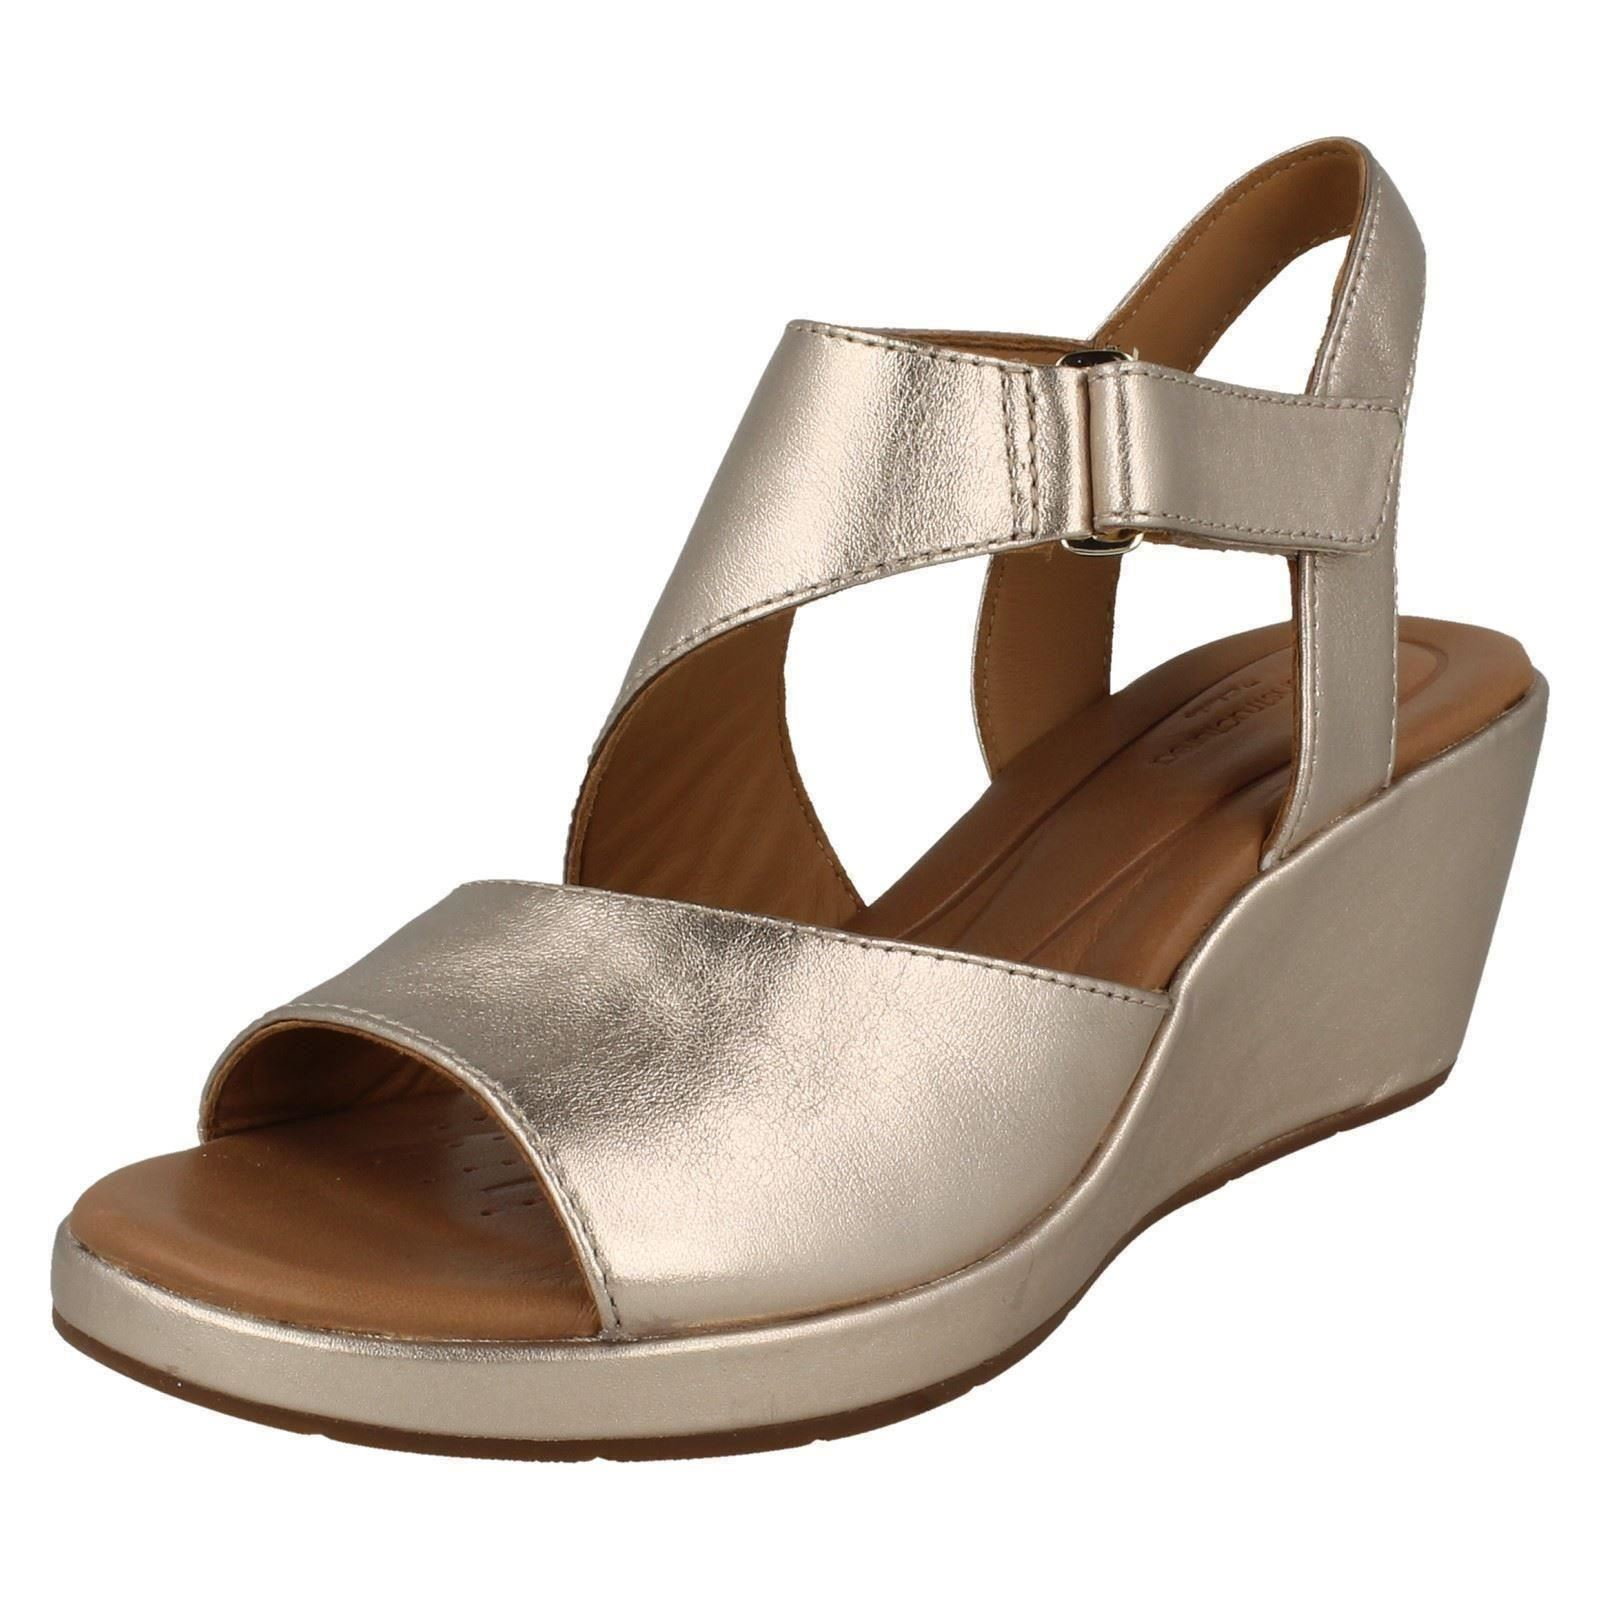 3b7f88b475 Ladies Unstructured by Clarks Wedge Heel Summer Sandals Un Plaza Sling Gold  Metallic UK 4 D. About this product. Picture 1 of 10; Picture 2 of 10 ...